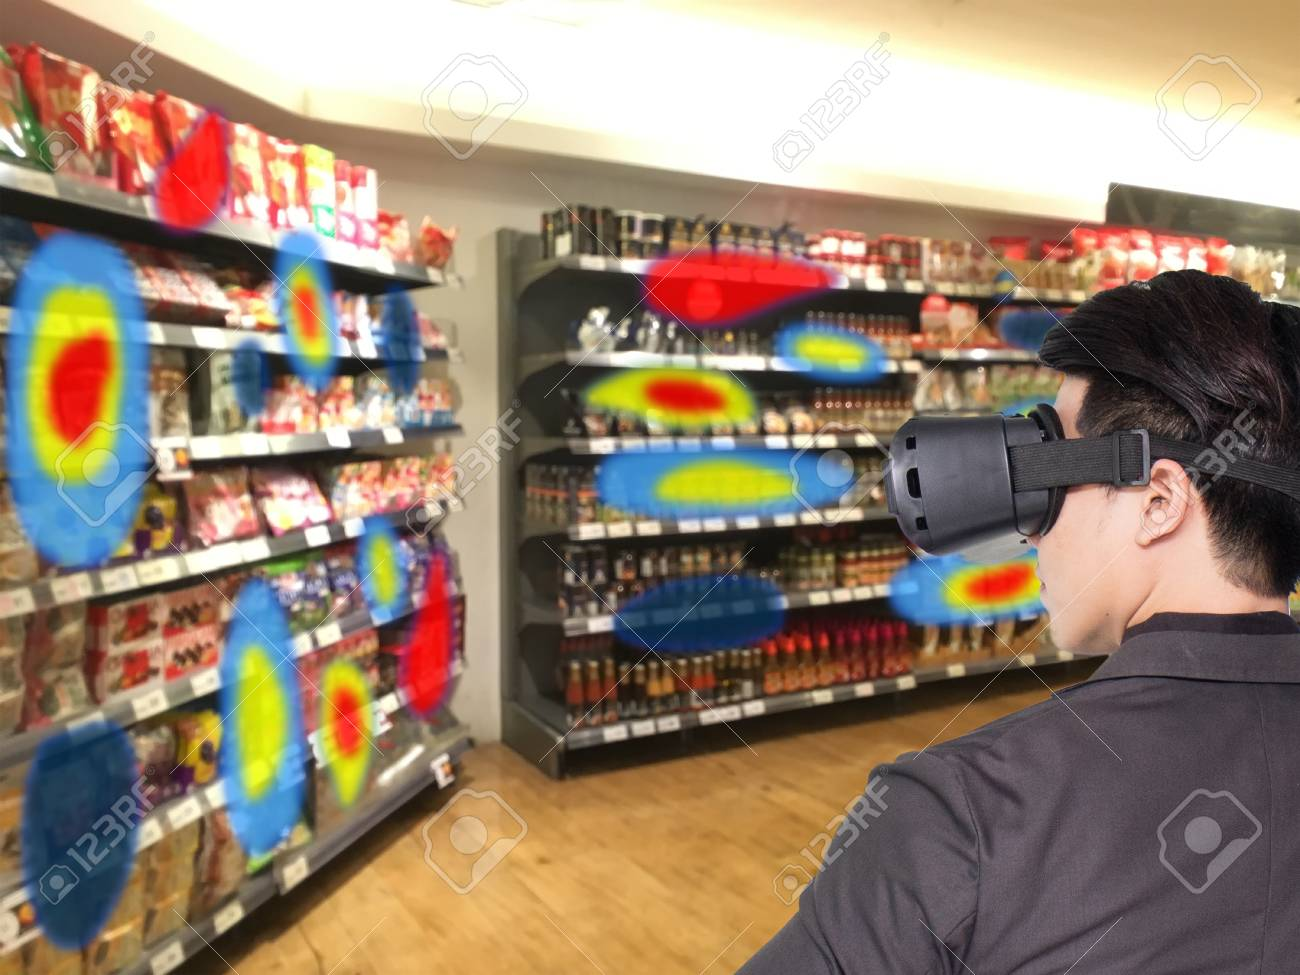 Augmented and virtual reality technology futuristic concept, Retailer use augmented combine virtual reality technology to find the data of eye tracking heat map to management, analysis, to improve - 89585340